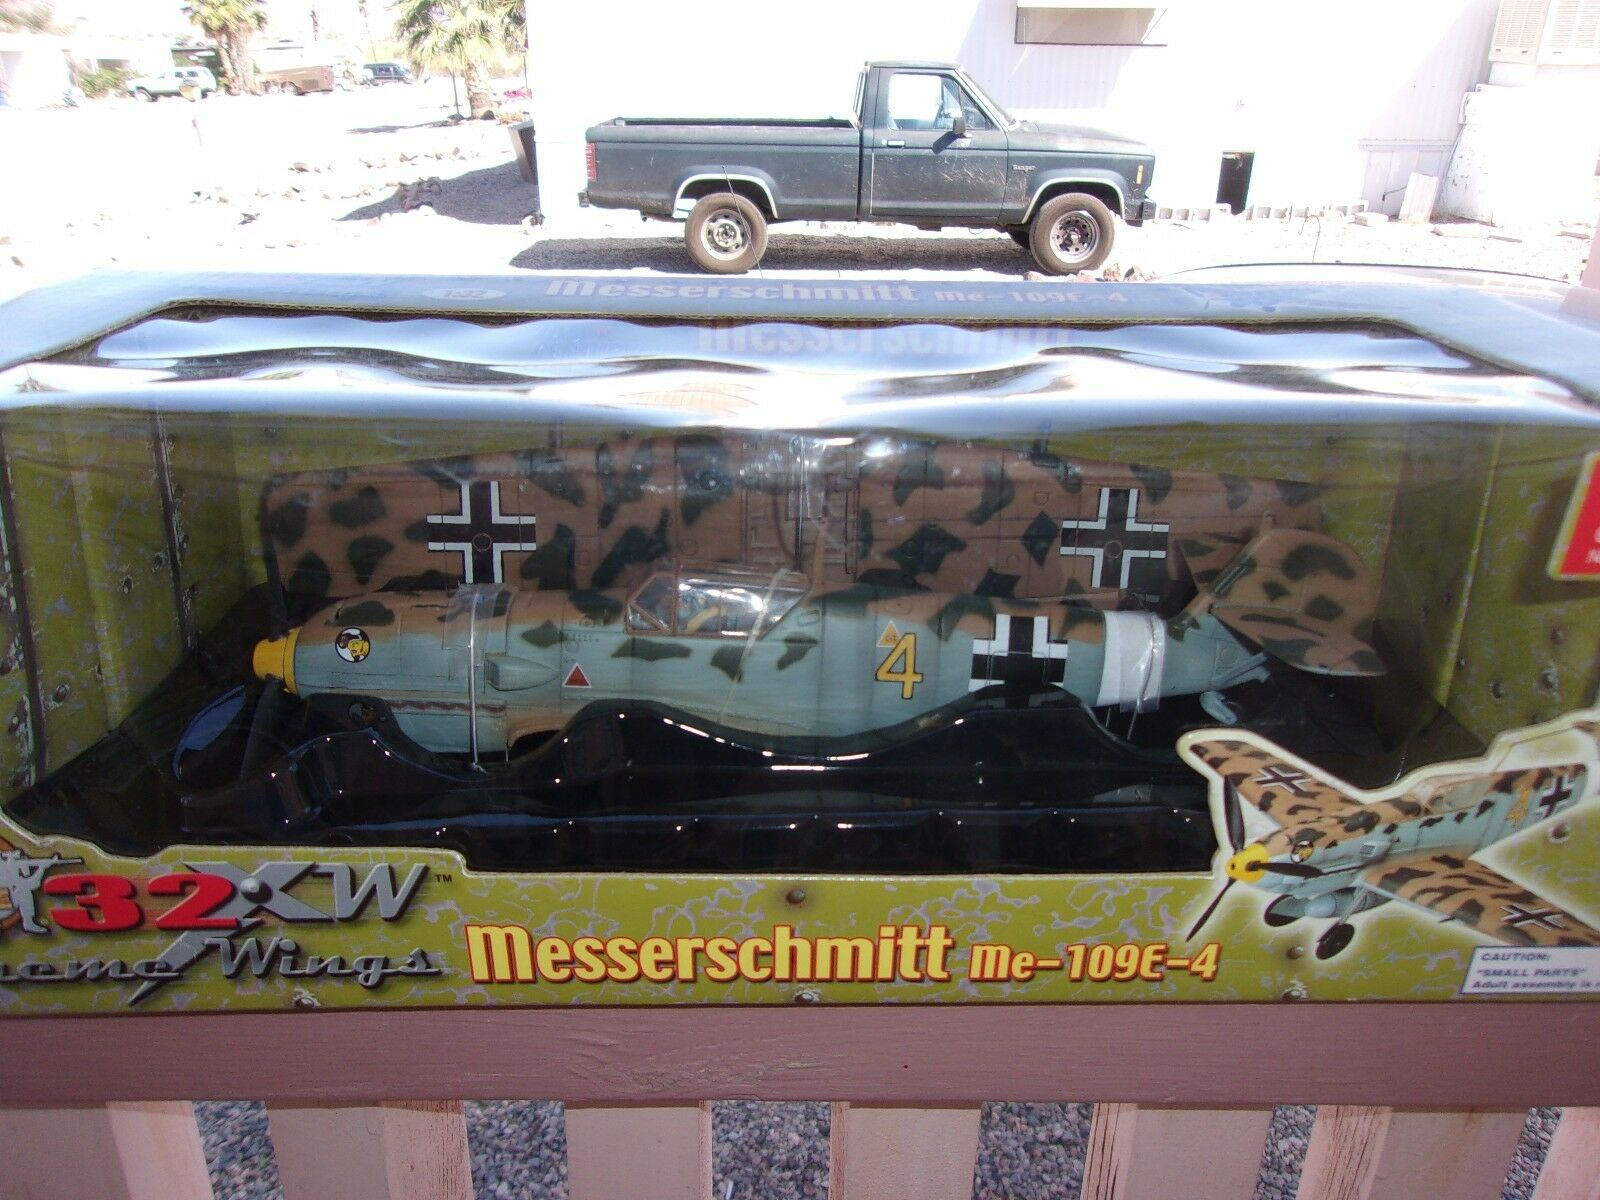 21st Century Spielzeugs Ultimate Soldier 1 32 Messerschmitt Me-109E-4 Wasp Squadron